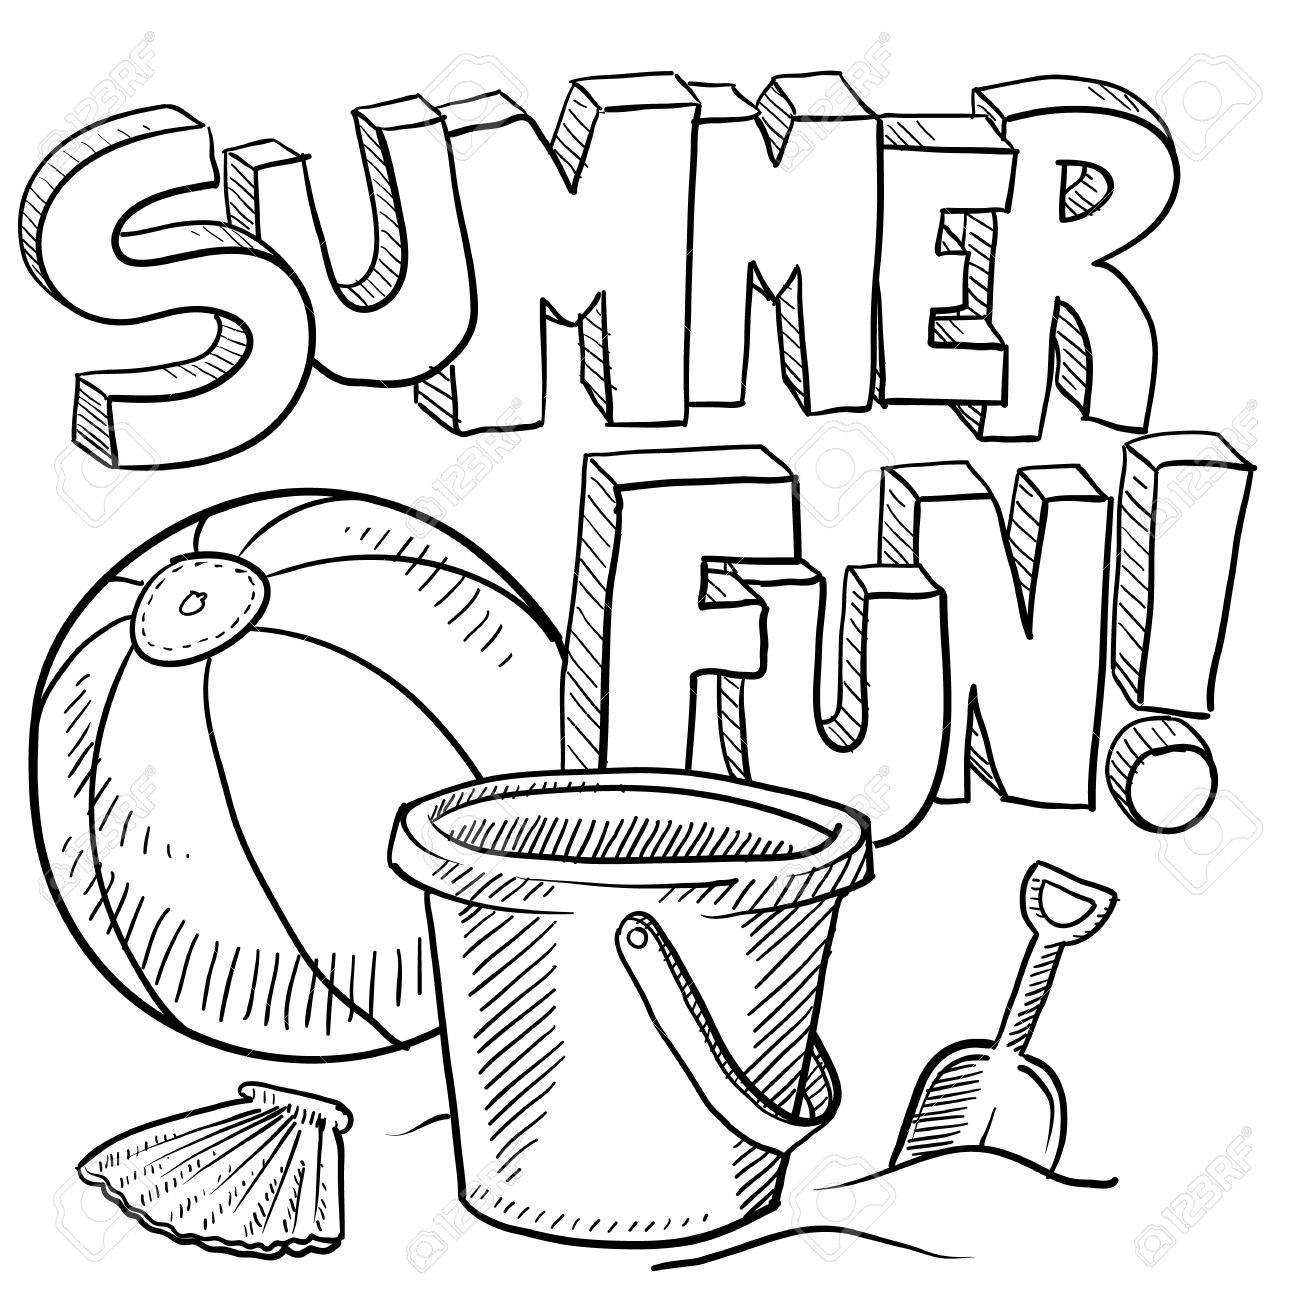 Disney coloring pages summer - Coloring Pictures Vacation Doodle Style Sketch Of Summer Fun Including Title Beach Ball And Sand